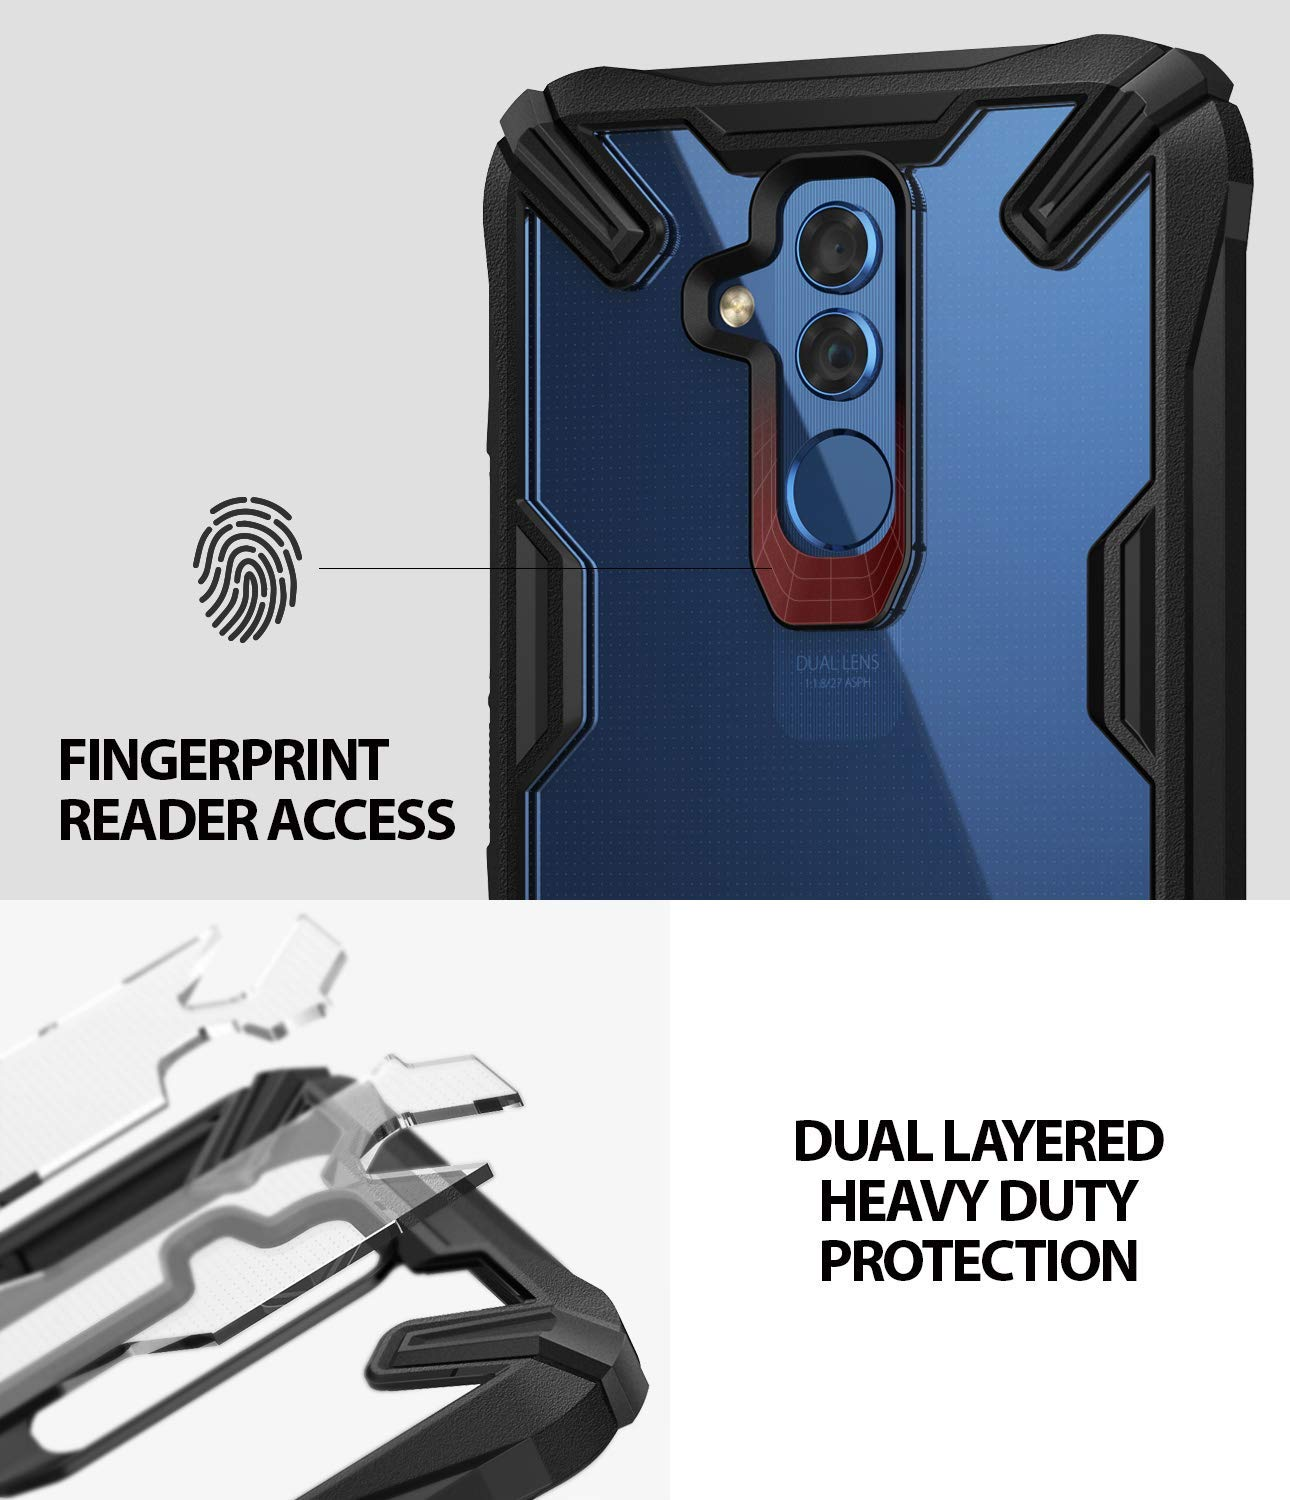 easy fingerprint reader access with dual layered heavy duty protection